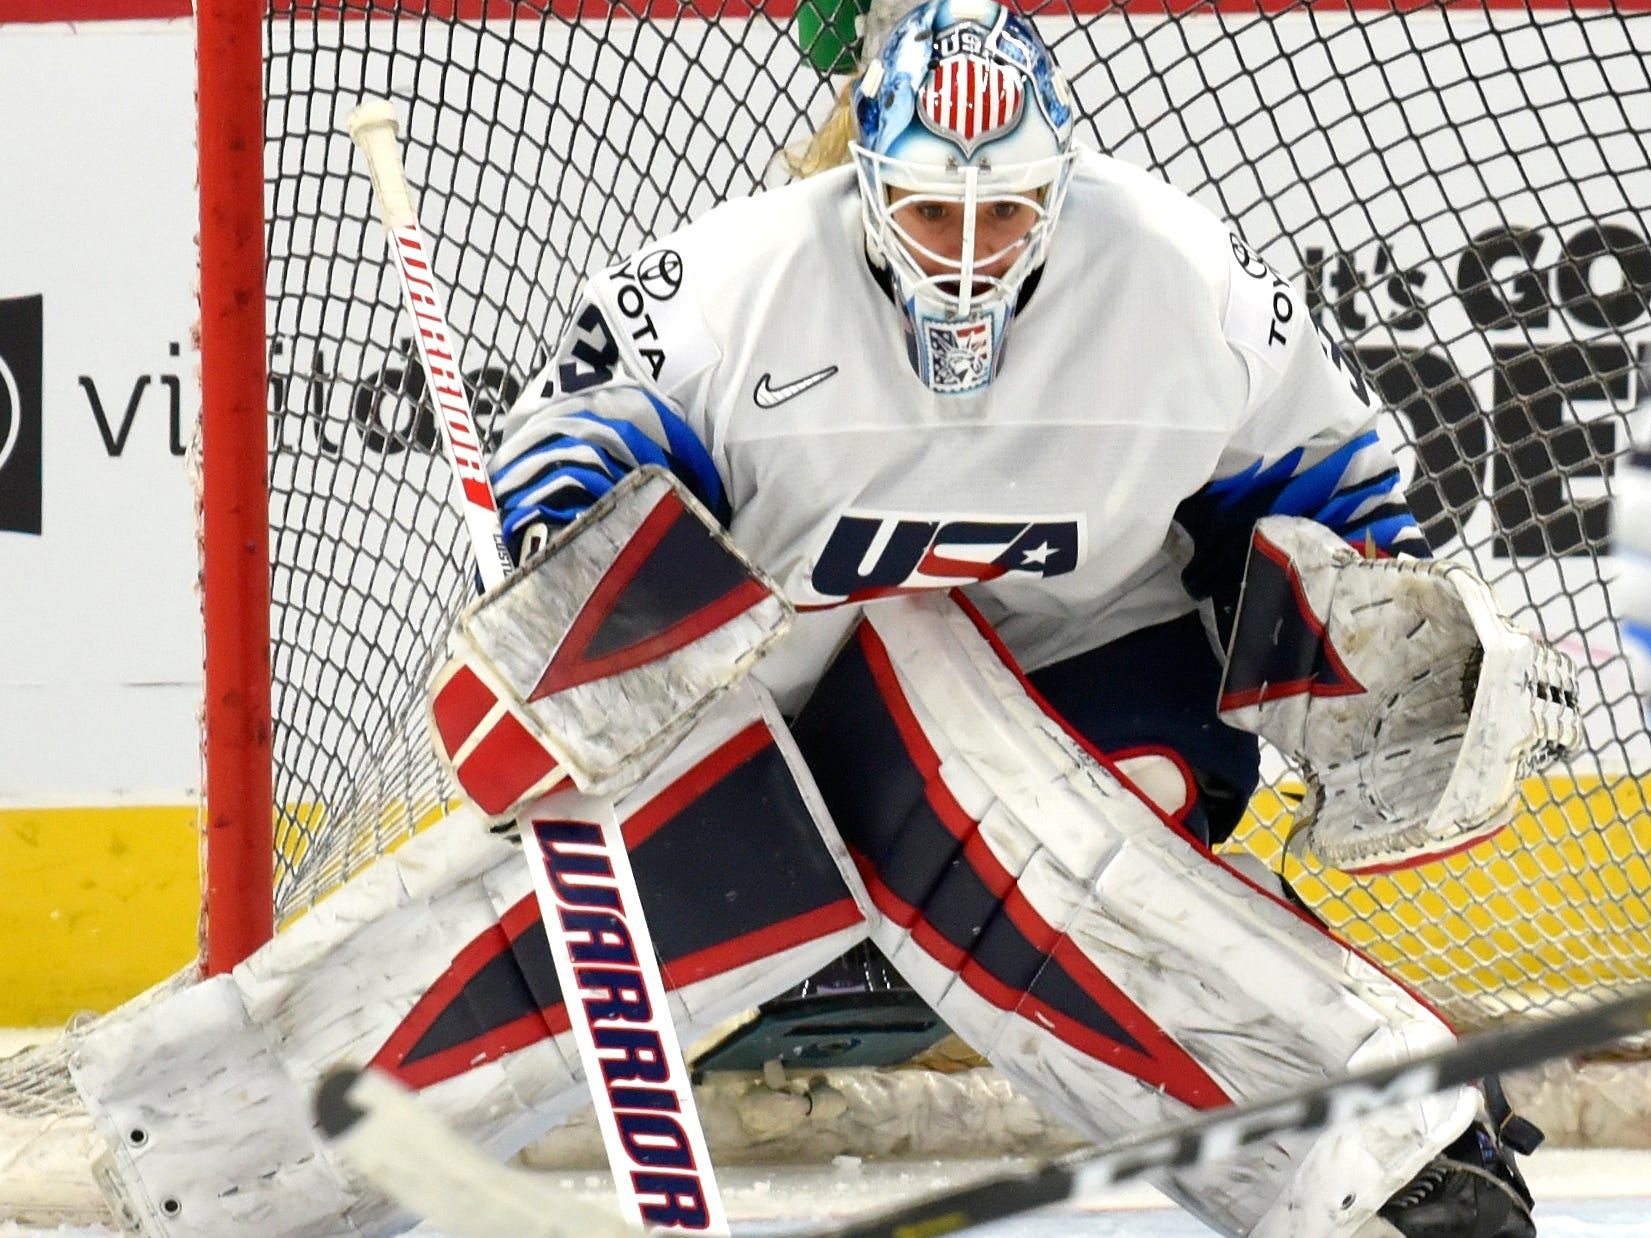 U.S. goalie Alex Rigsby(33) makes a save in the third period.